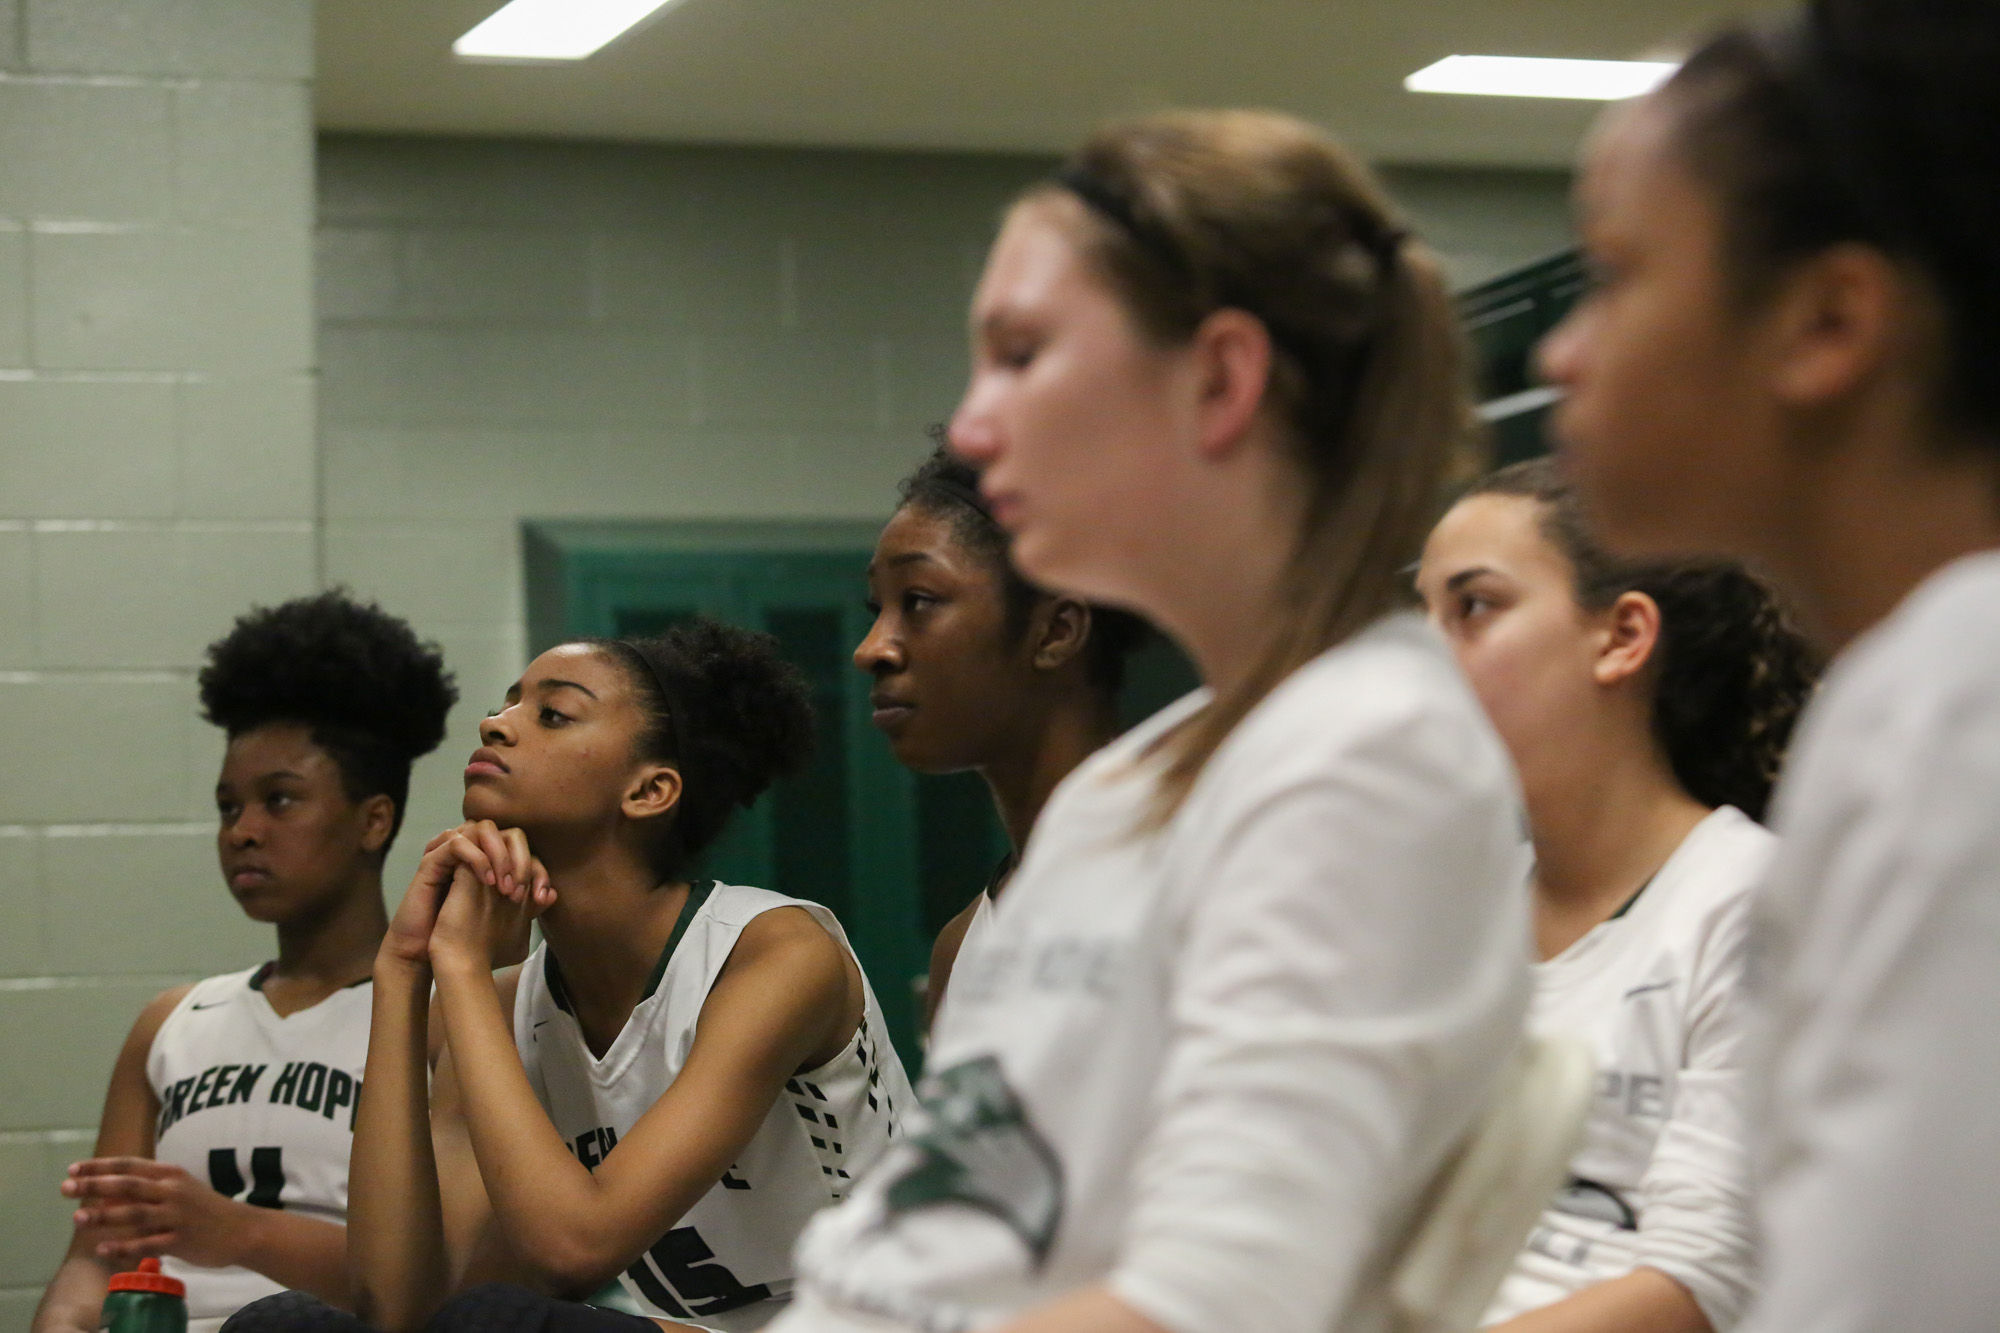 Green Hope girls listen to coach Robinson's instruction on strategies during the half time in the Green Hope's locker room.